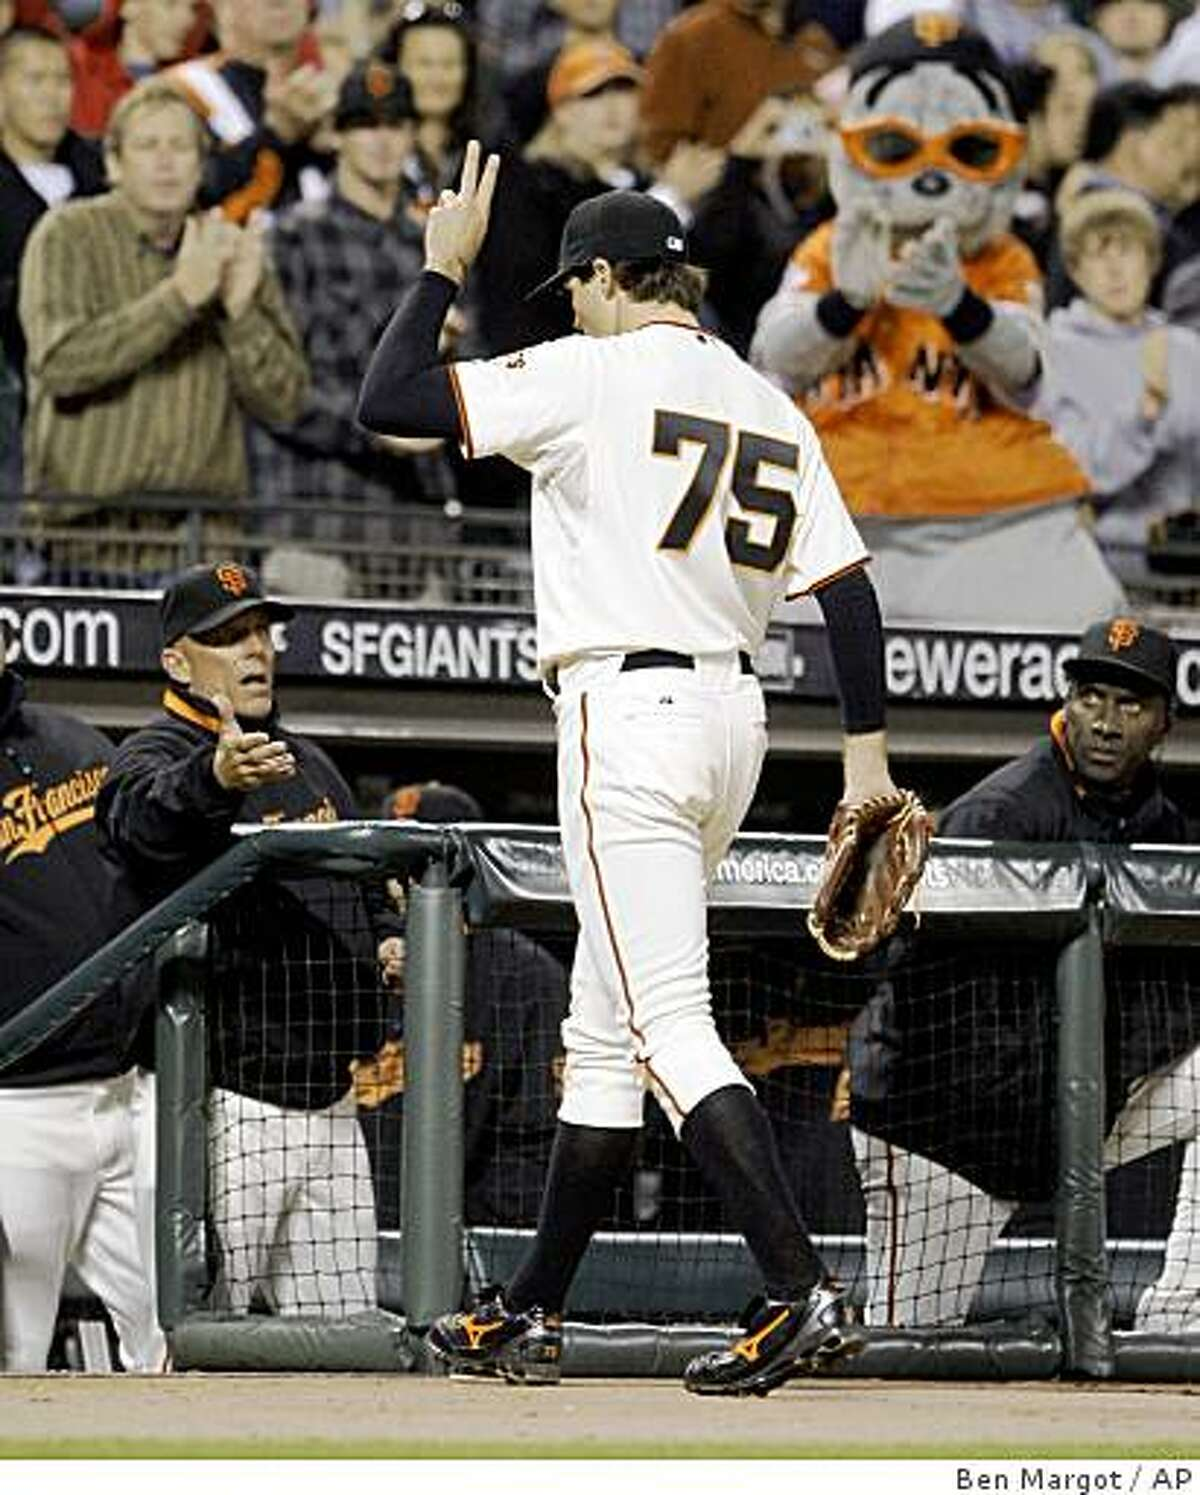 San Francisco Giants' Barry Zito gestures to fans as he leaves the baseball game against the Florida Marlins during the ninth inning Tuesday, July 7, 2009, in San Francisco. (AP Photo/Ben Margot)